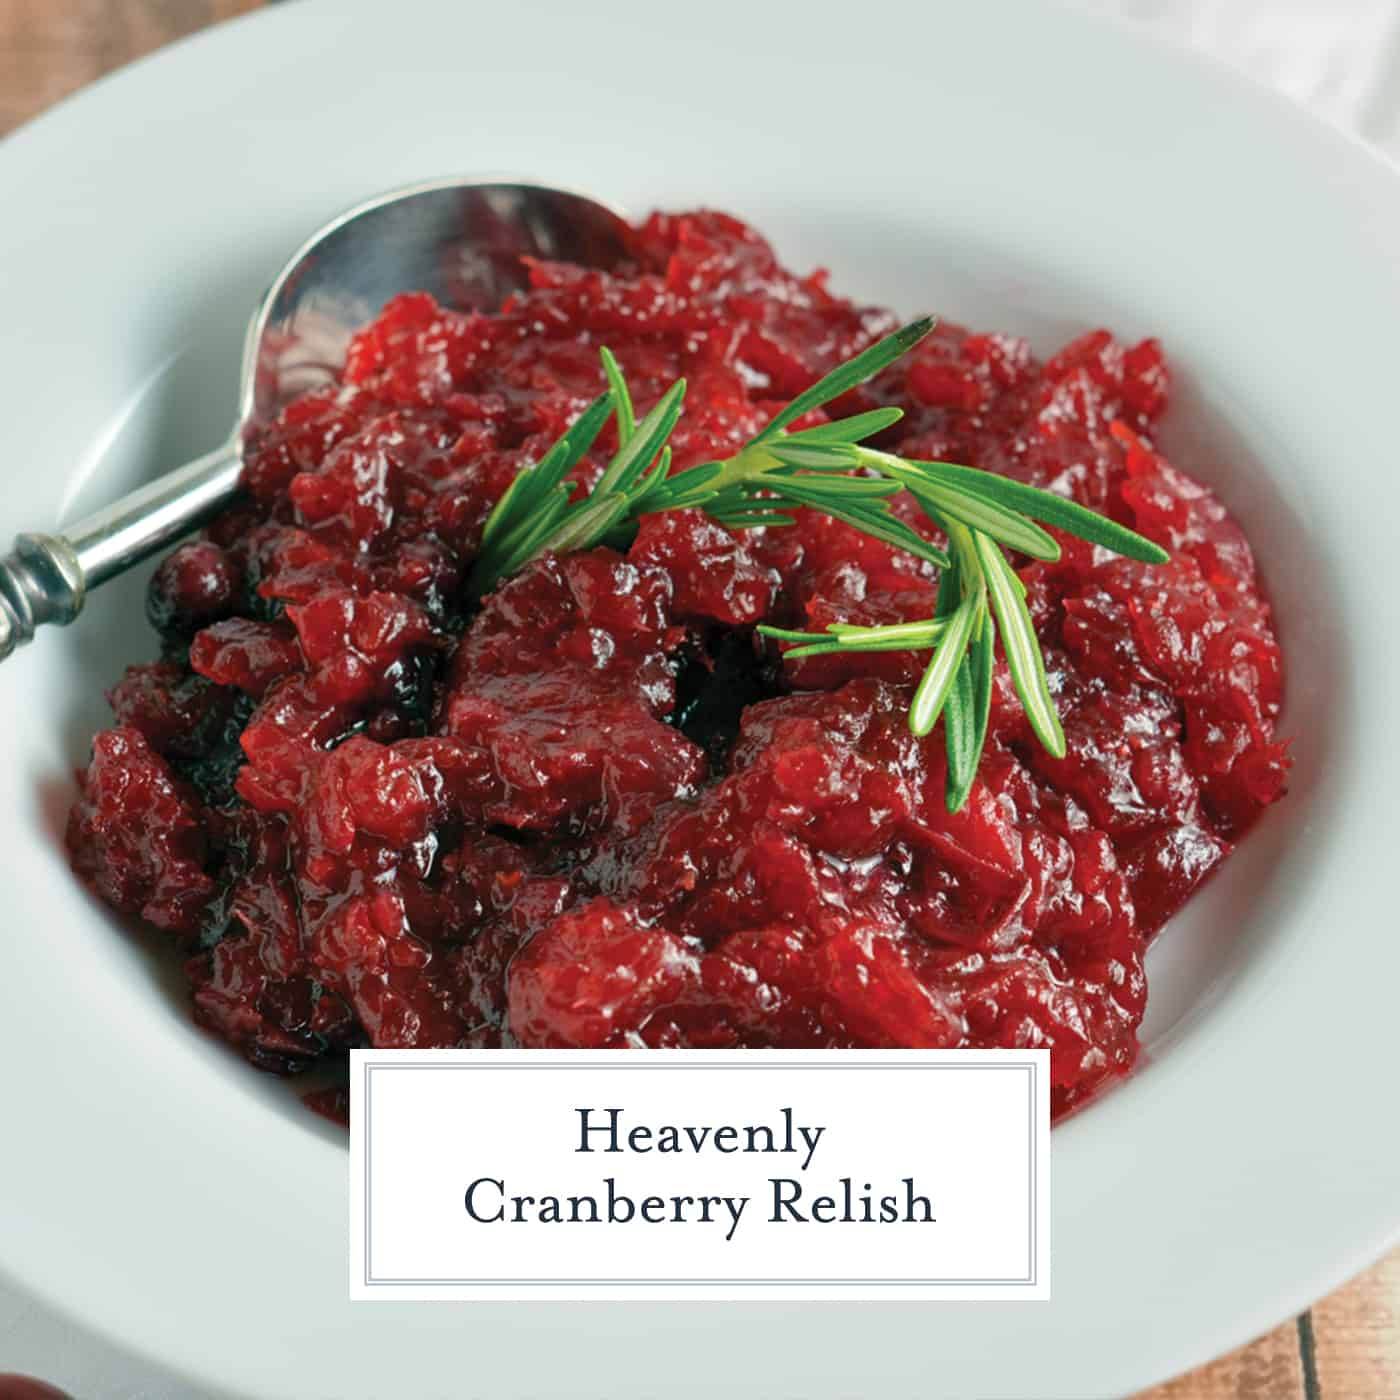 This homemade Cranberry Relish recipe is perfect for your Turkey Day festivities and will soon be a must-have every holiday season.  #cranberryrelish #cranberrysauce www.savoryexperiments.com